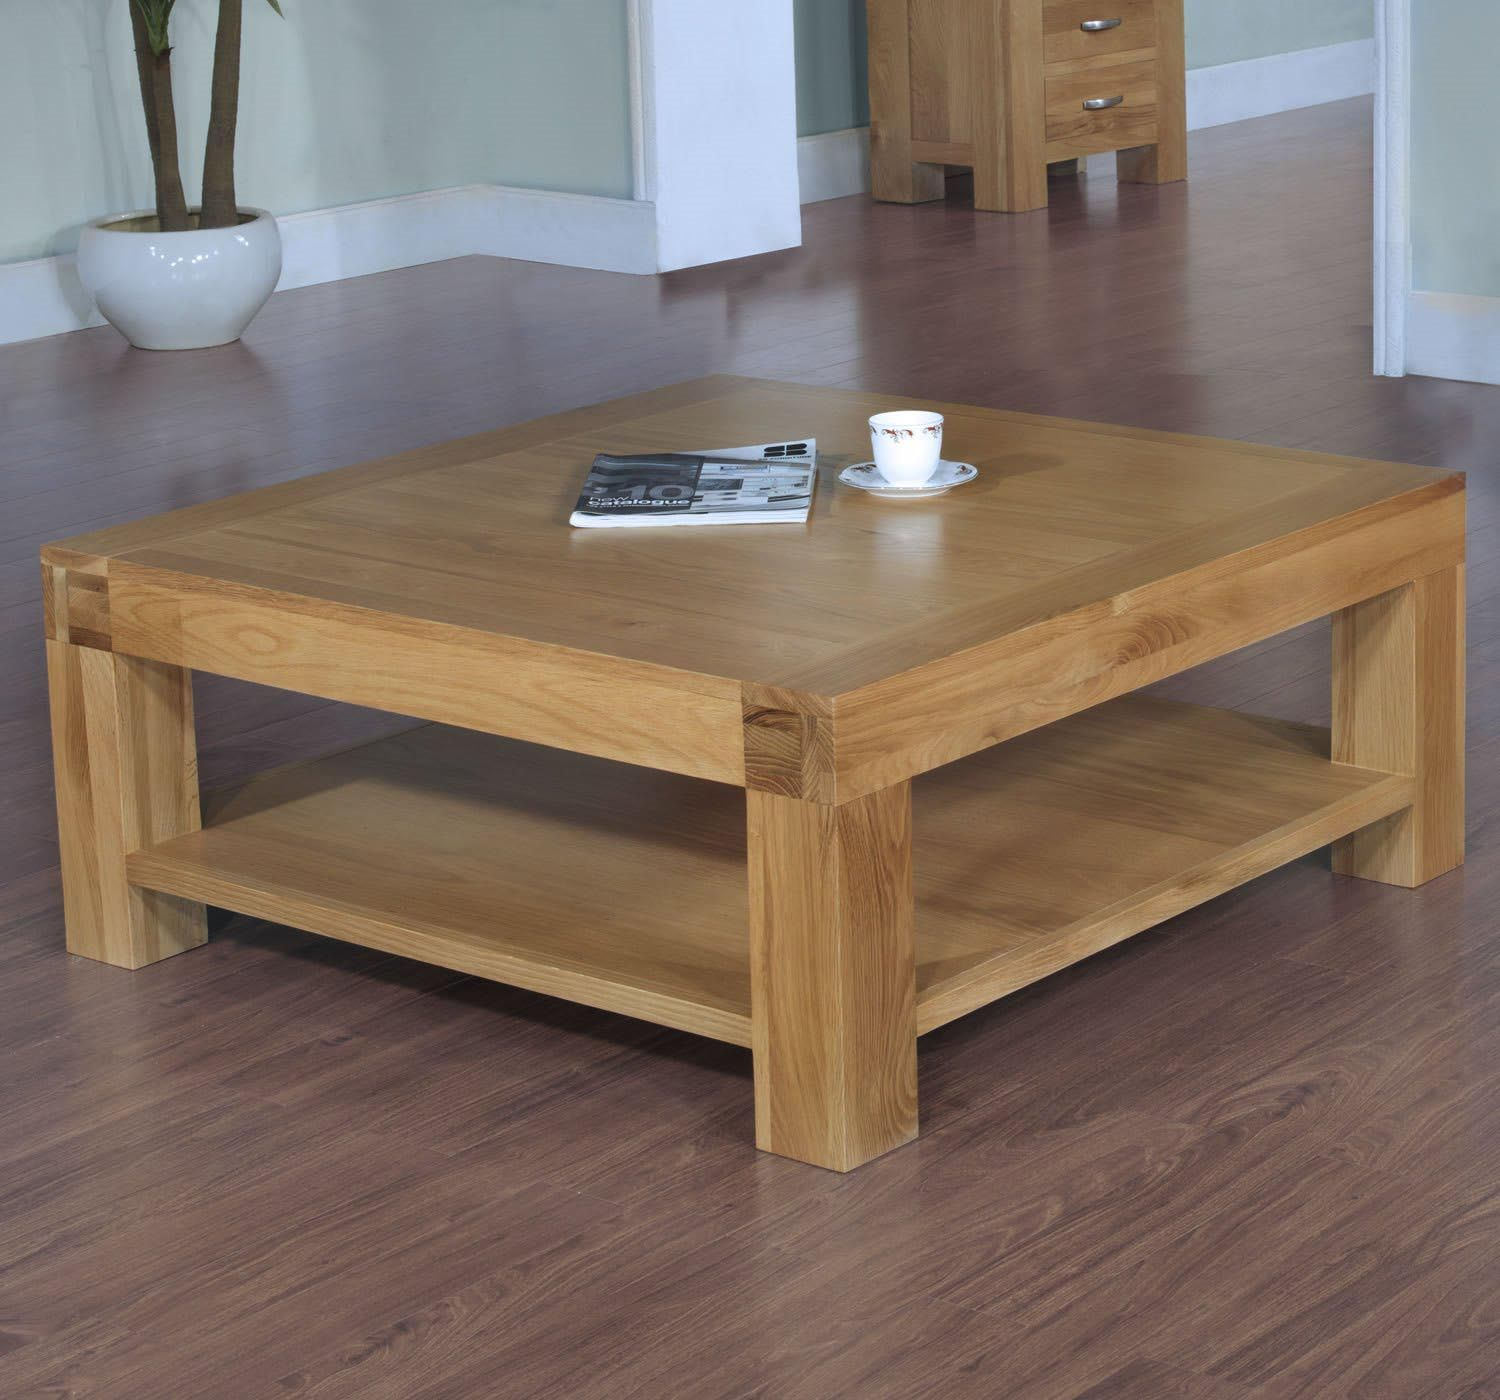 Pine Square Coffee Table Square Wood Coffee Table Coffee Table Wood Coffee Table